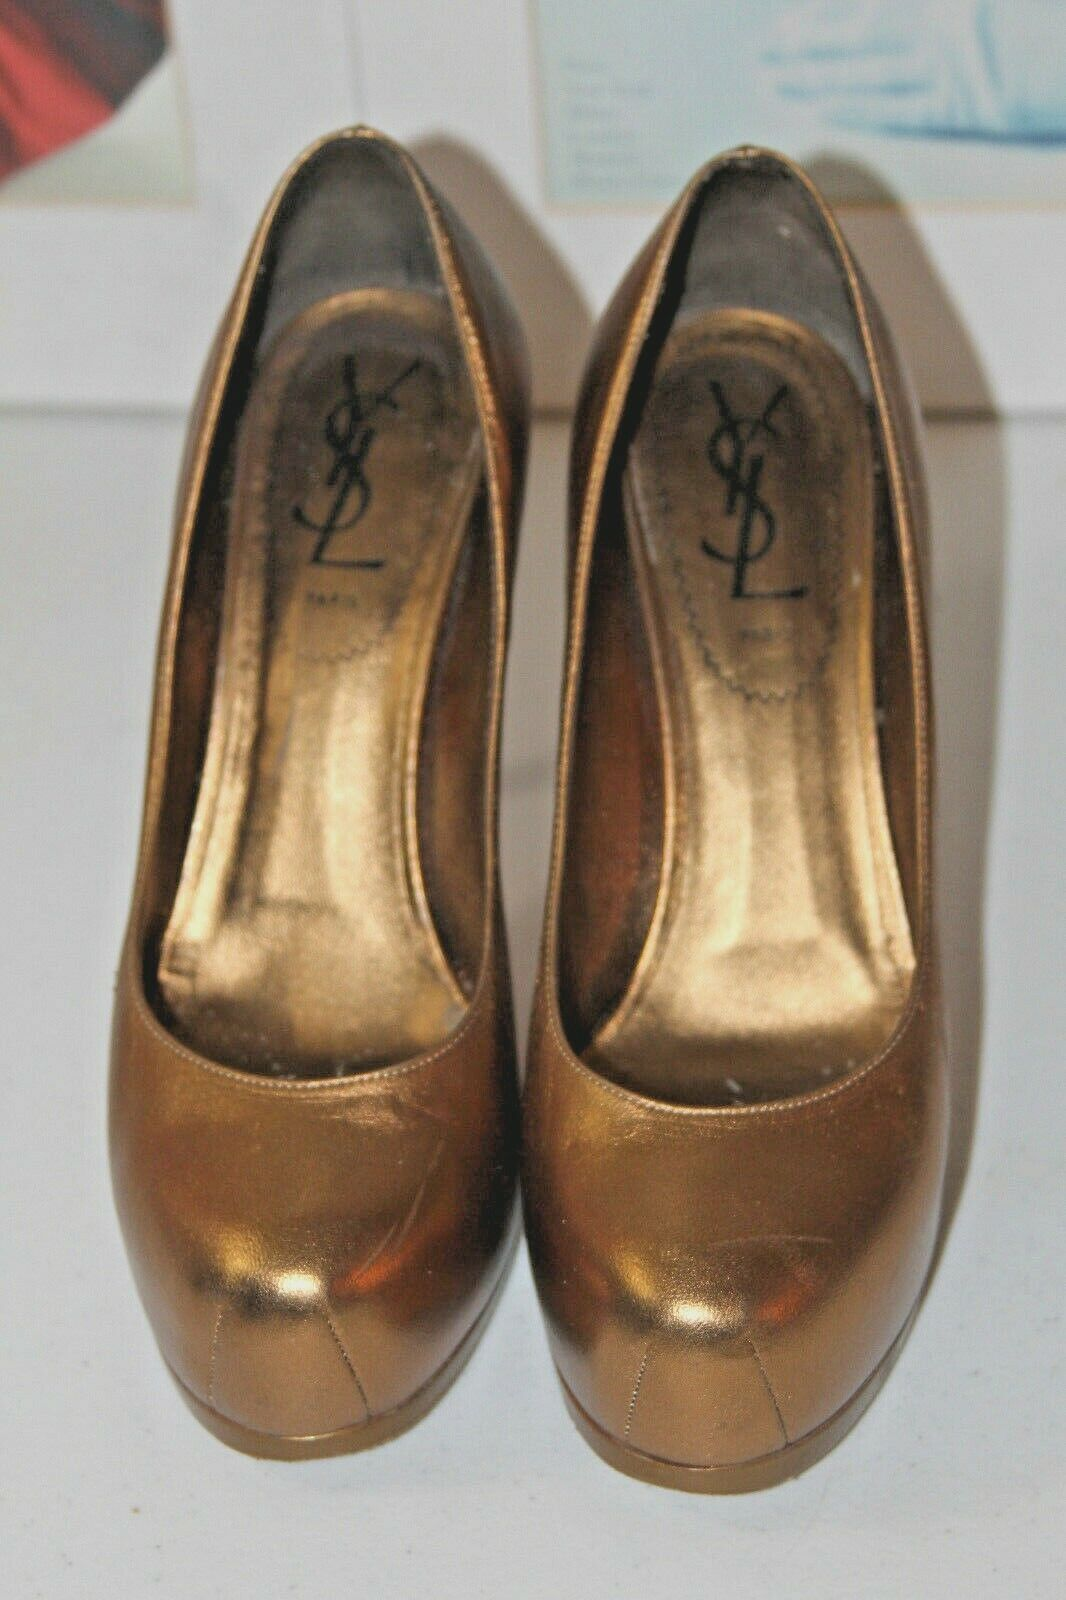 YSL TRIBTOO gold BRONZE LEATHER PLATFORM PUMP   SZ 36 6